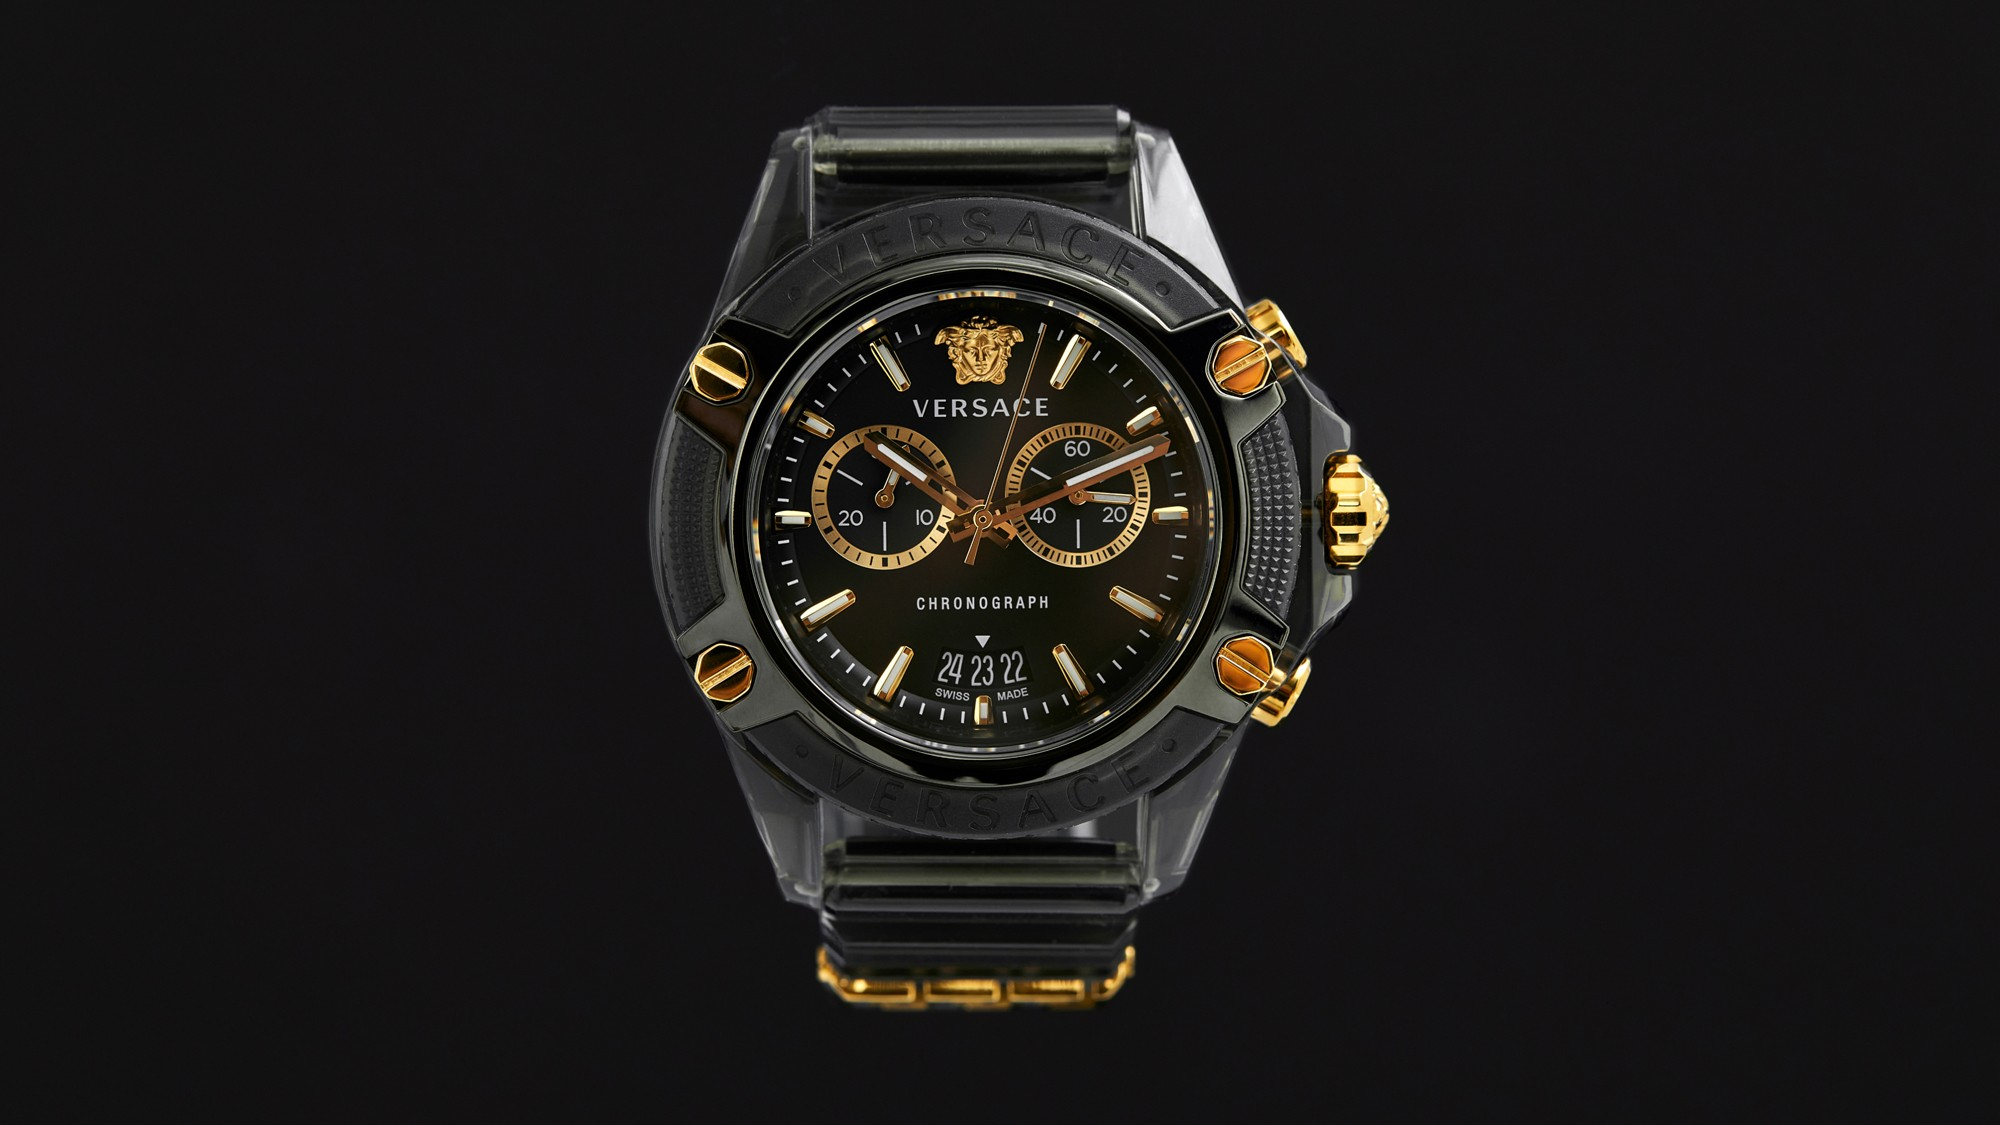 versace Donatella Versace avant garde classic designs, sophisticated functionalities, richer details and flawless personal style all-new Versace Icon Active chronograph watch street culture references and a sporty, minimalistic design Greek key metal loop Medusa that sits at 12h Greek key Greca motif inner ring IP champagne transparent polycarbonate opulent